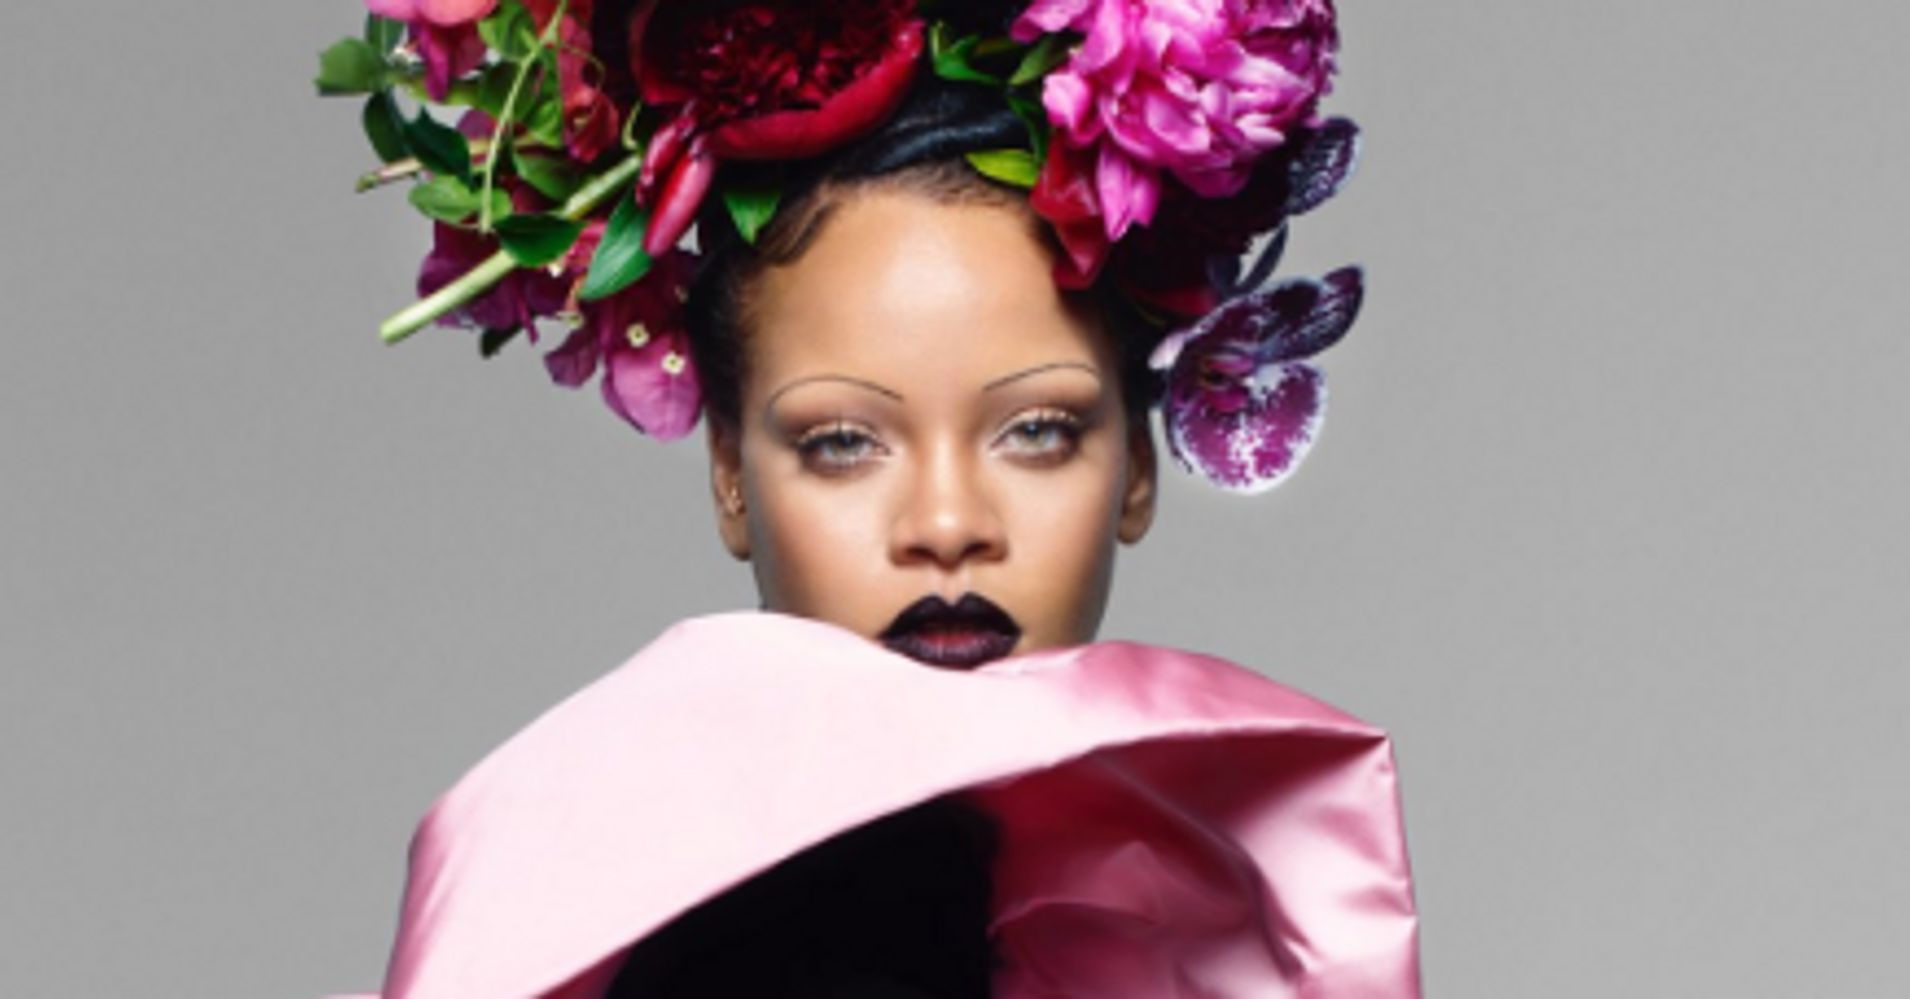 Please Don't Pluck Your Eyebrows To Copy Rihanna's Vogue Look